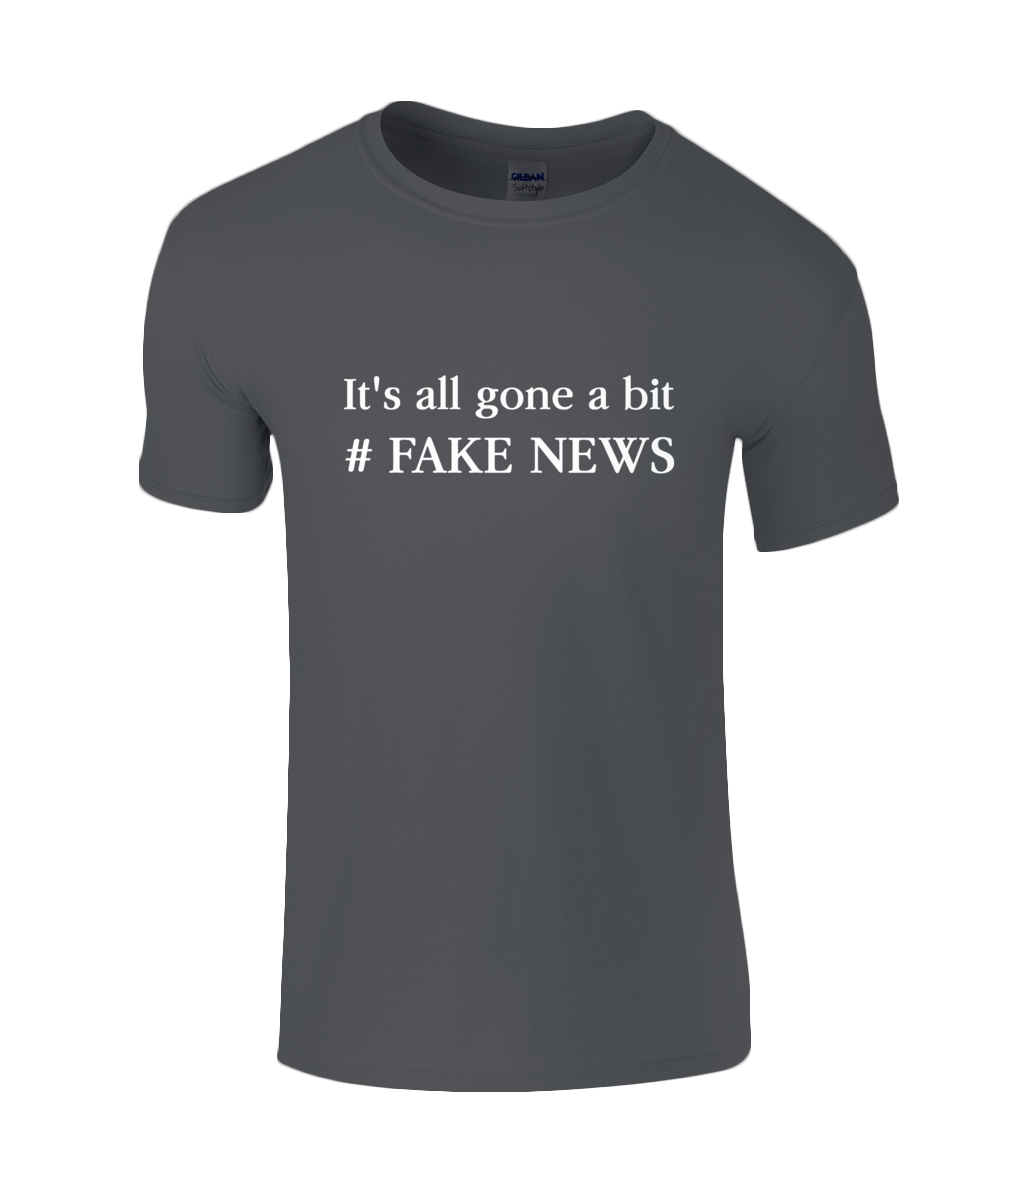 It's All Gone A Bit # Fake News - men's t-shirt